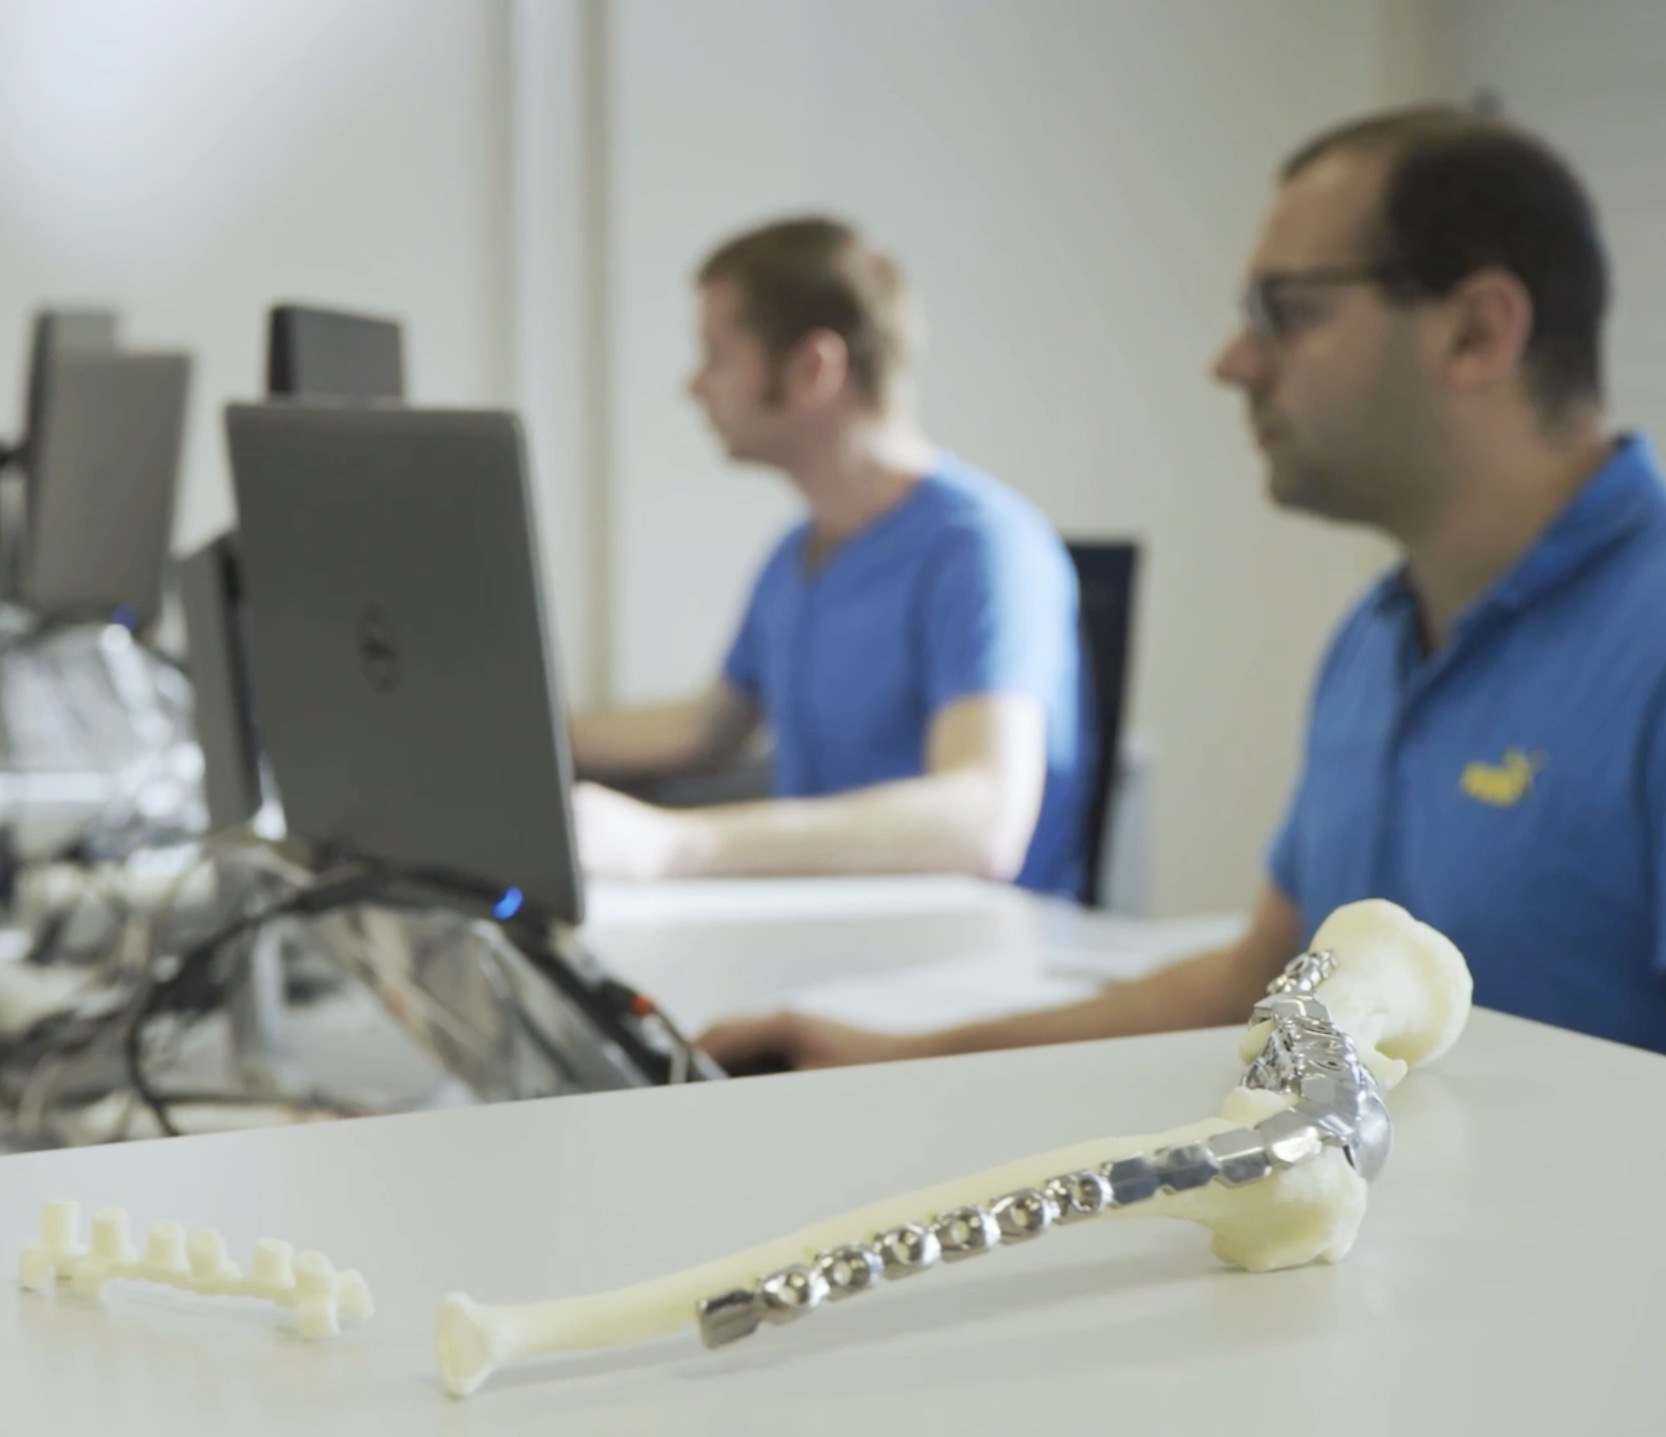 Materialise Packages Up All The 3D Printing Software You Need In One Bundle